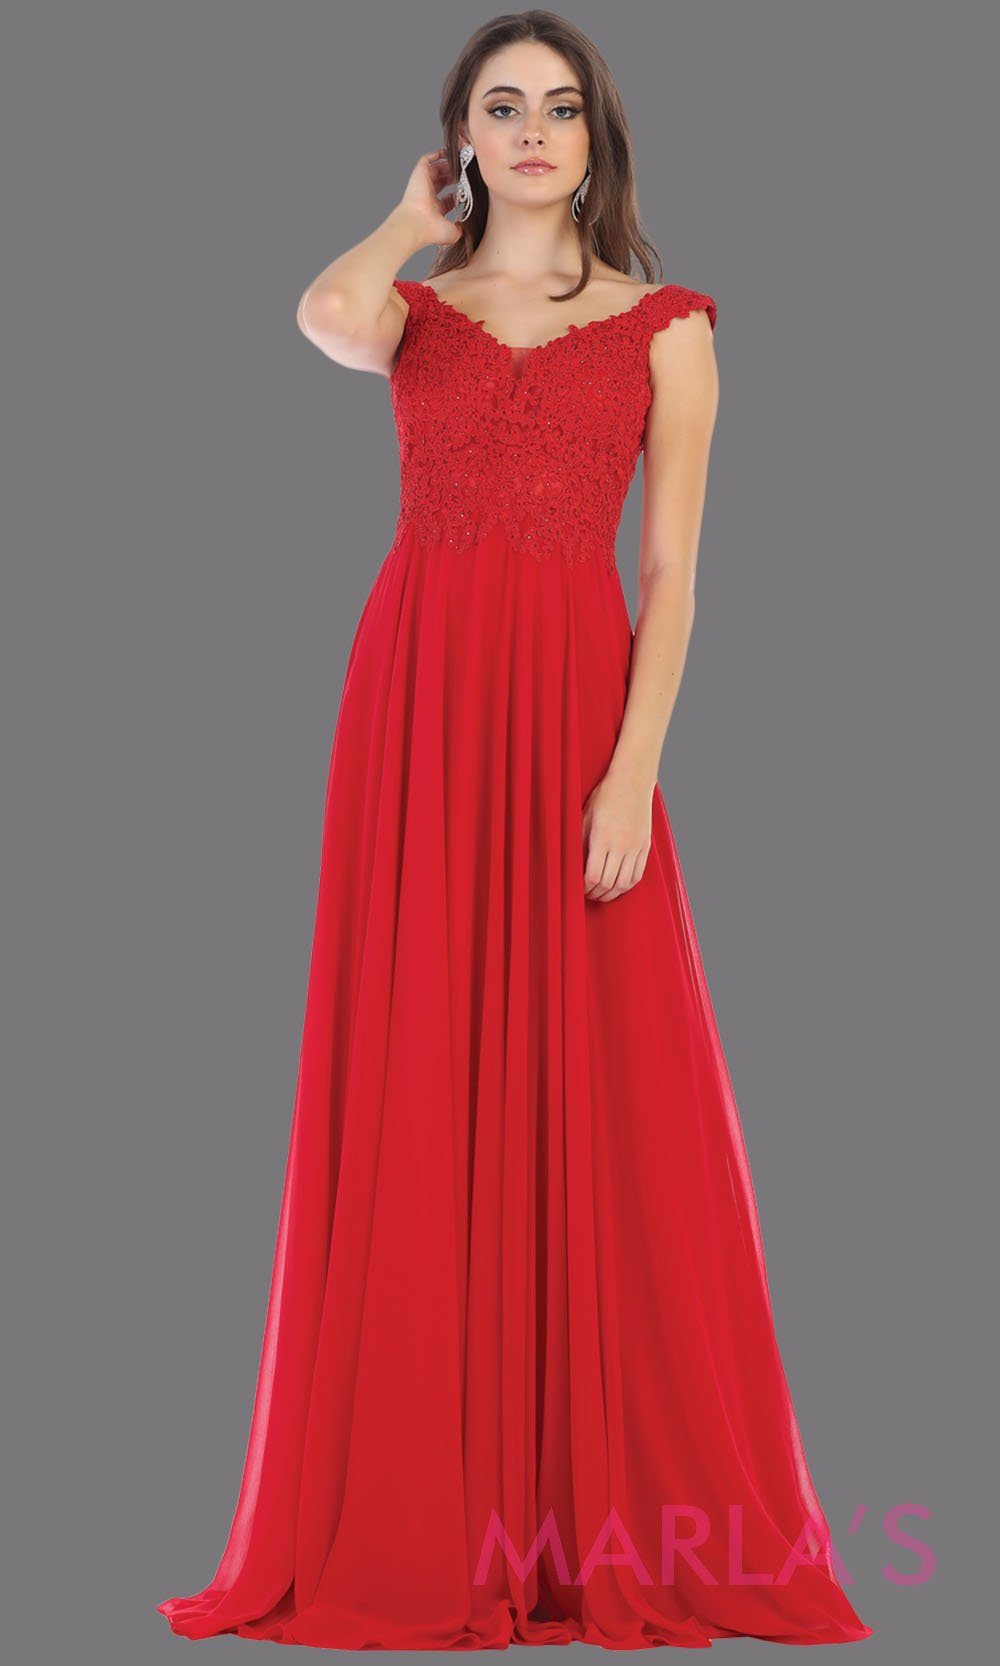 Long flowy red off shoulder dress with corset back and lace top. This red a-line gown is perfect for bridesmaids, simple wedding guest dress, formal party, plus size wedding guest dress, modest gown, indowestern gown